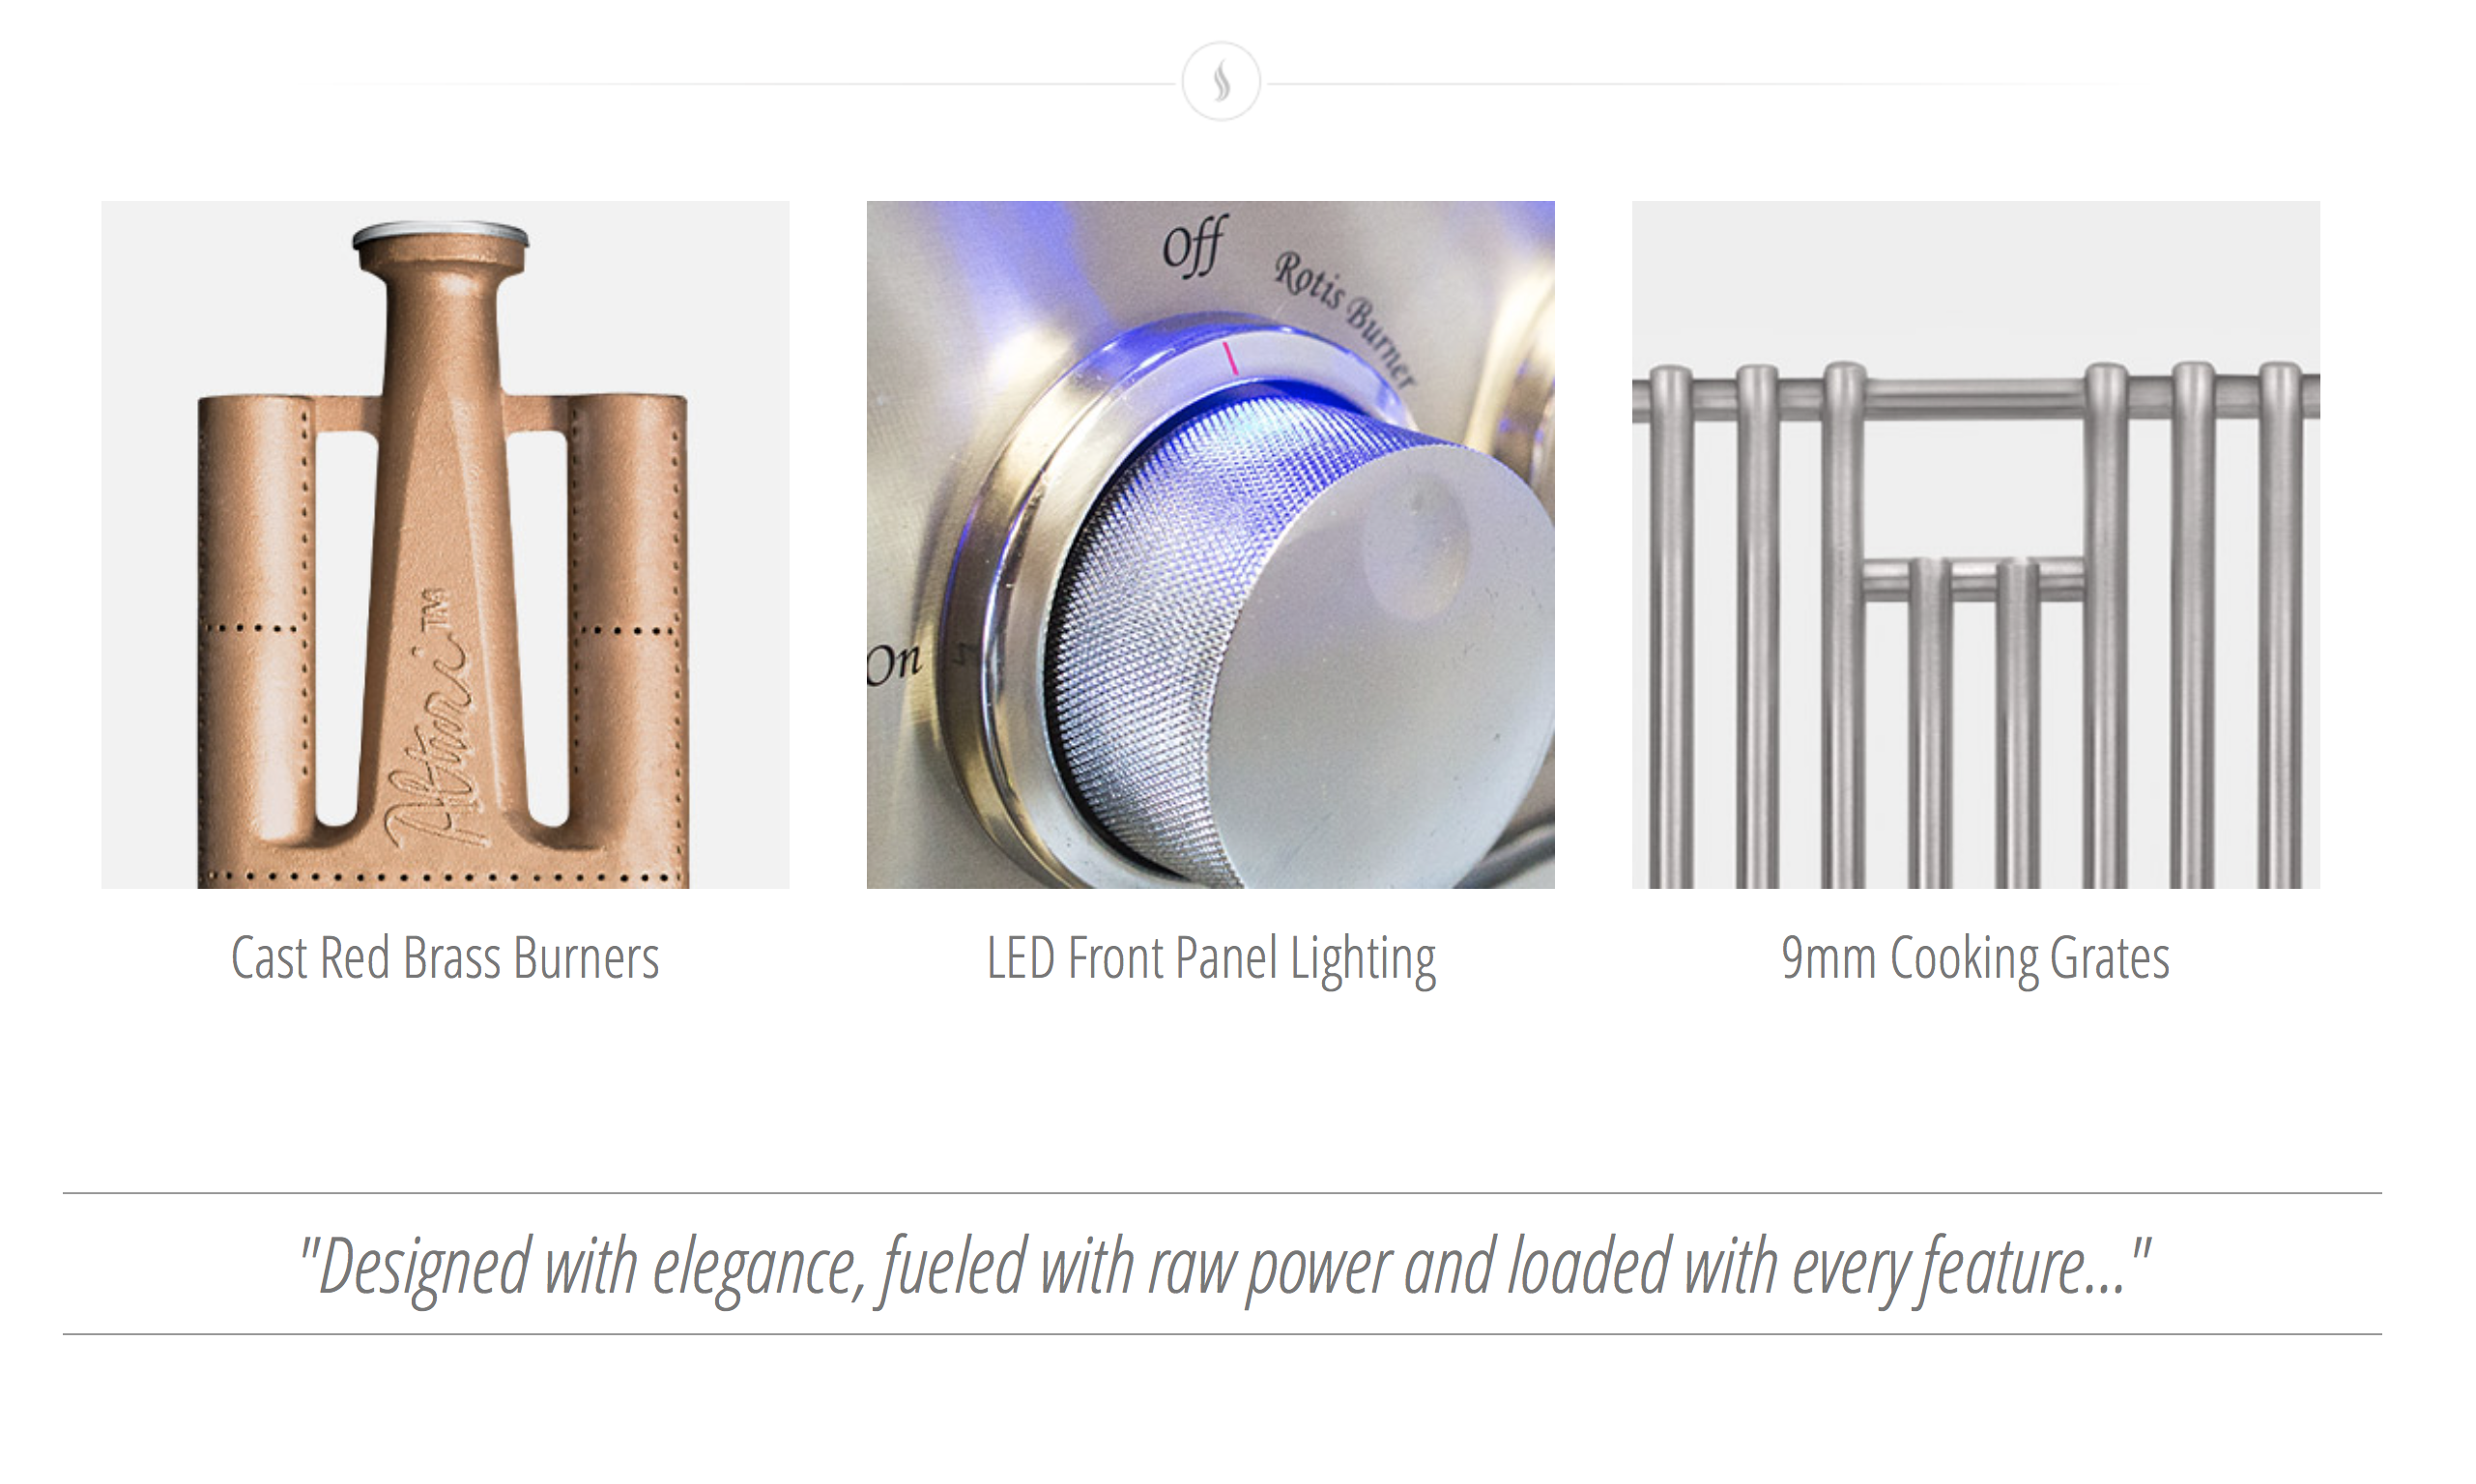 summerset alturi features include red brass burners, 9mm cooking grates, and led lighting